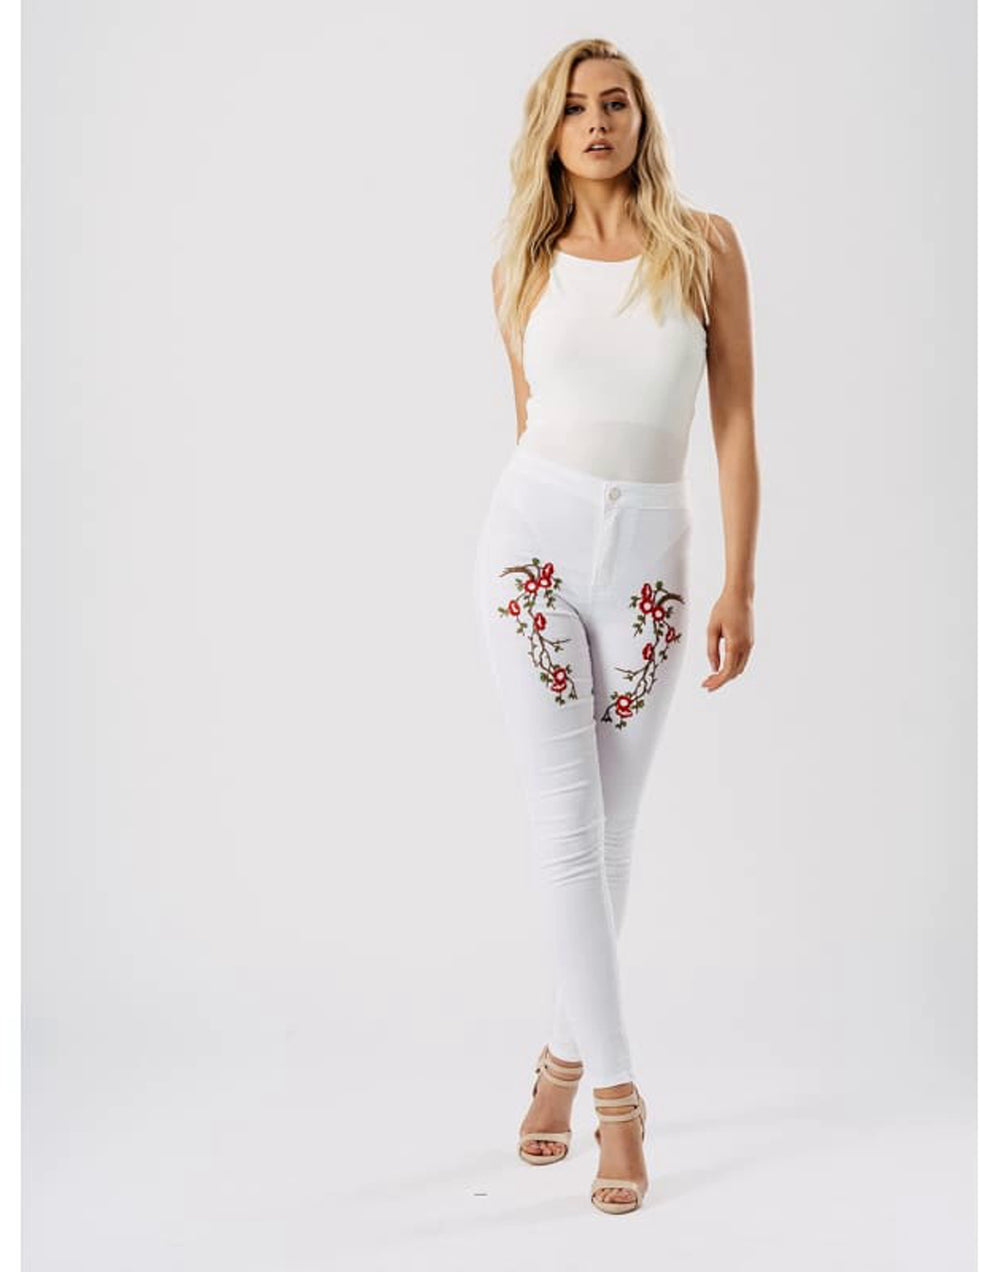 White Floral Embroidered Skinny Jeans - 10 / White - Jeans & Jeggings embellished jeans embroidered skinny jeans fitted trousers floral  Edit alt text